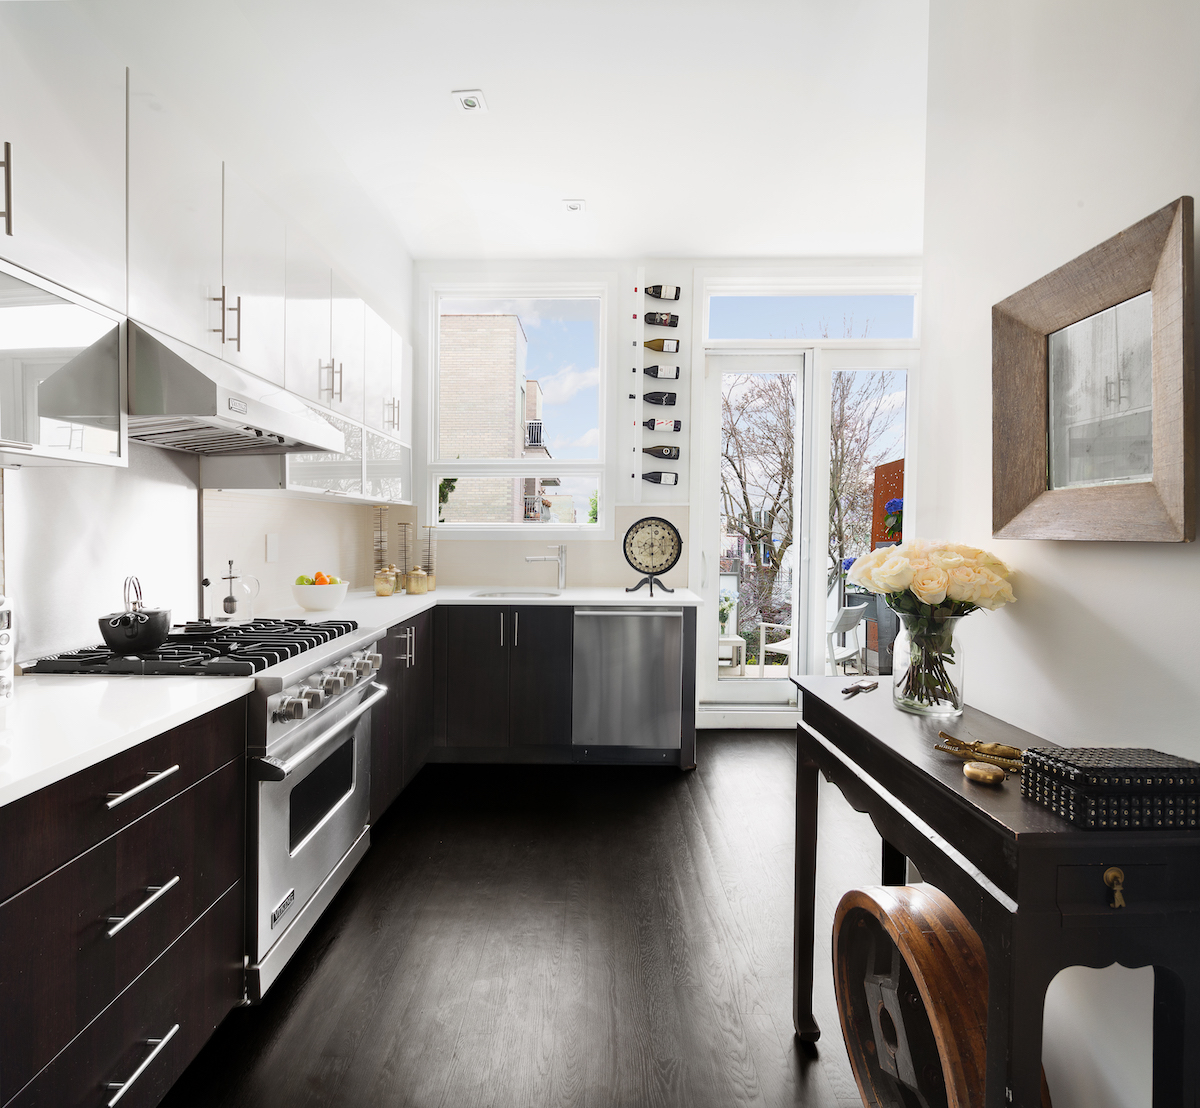 greenwood heights, cool listings, townhouses